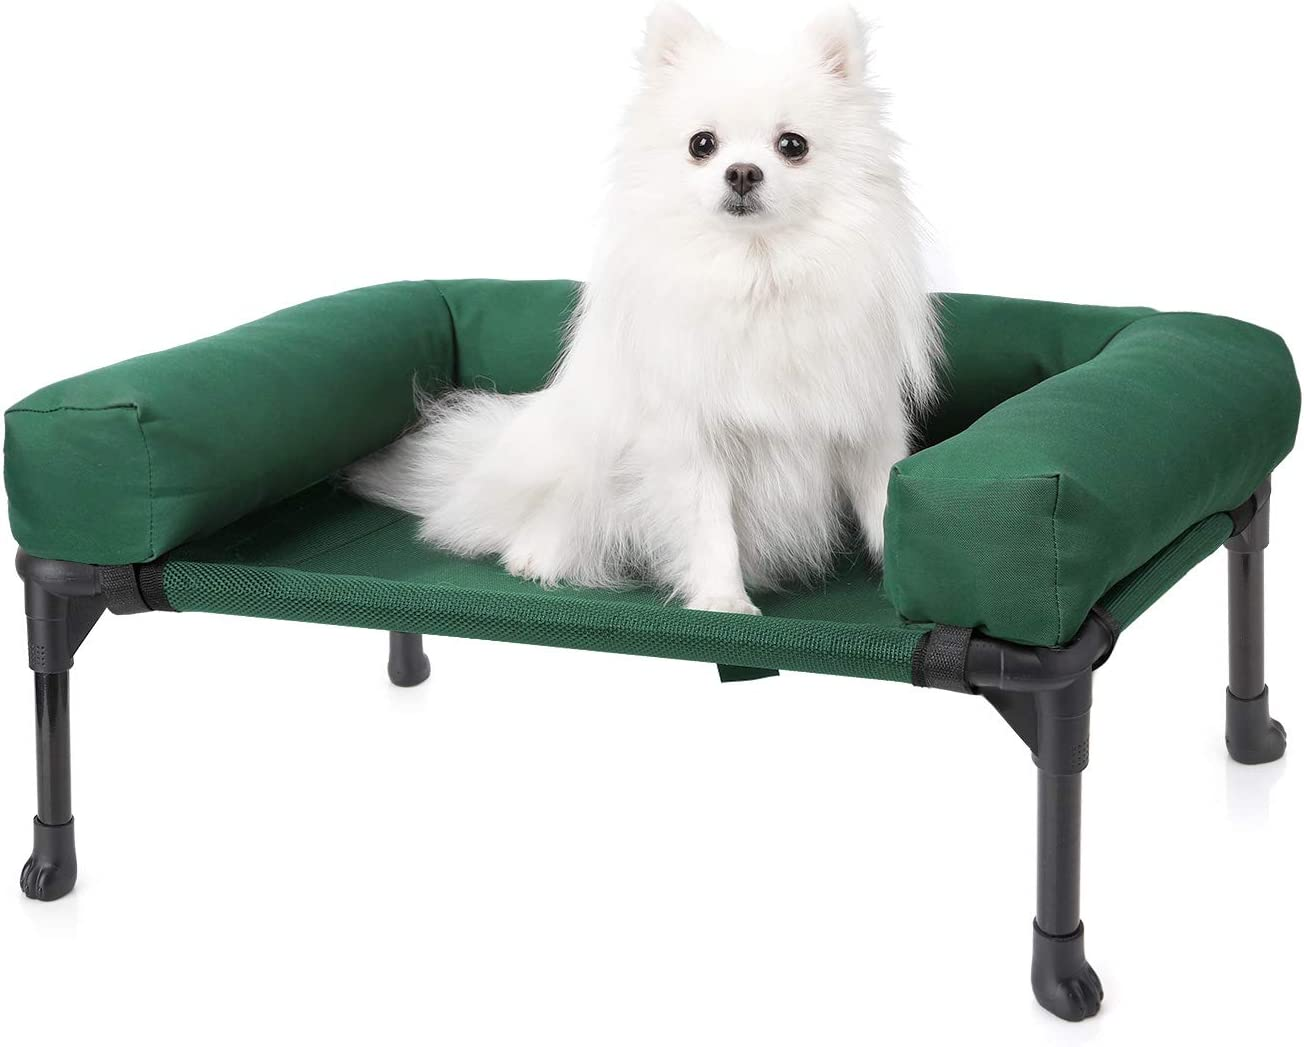 Max 79% Milwaukee Mall OFF Veehoo Bolster Elevated Dog Bed – Pr Cooling Raised Chew Pet